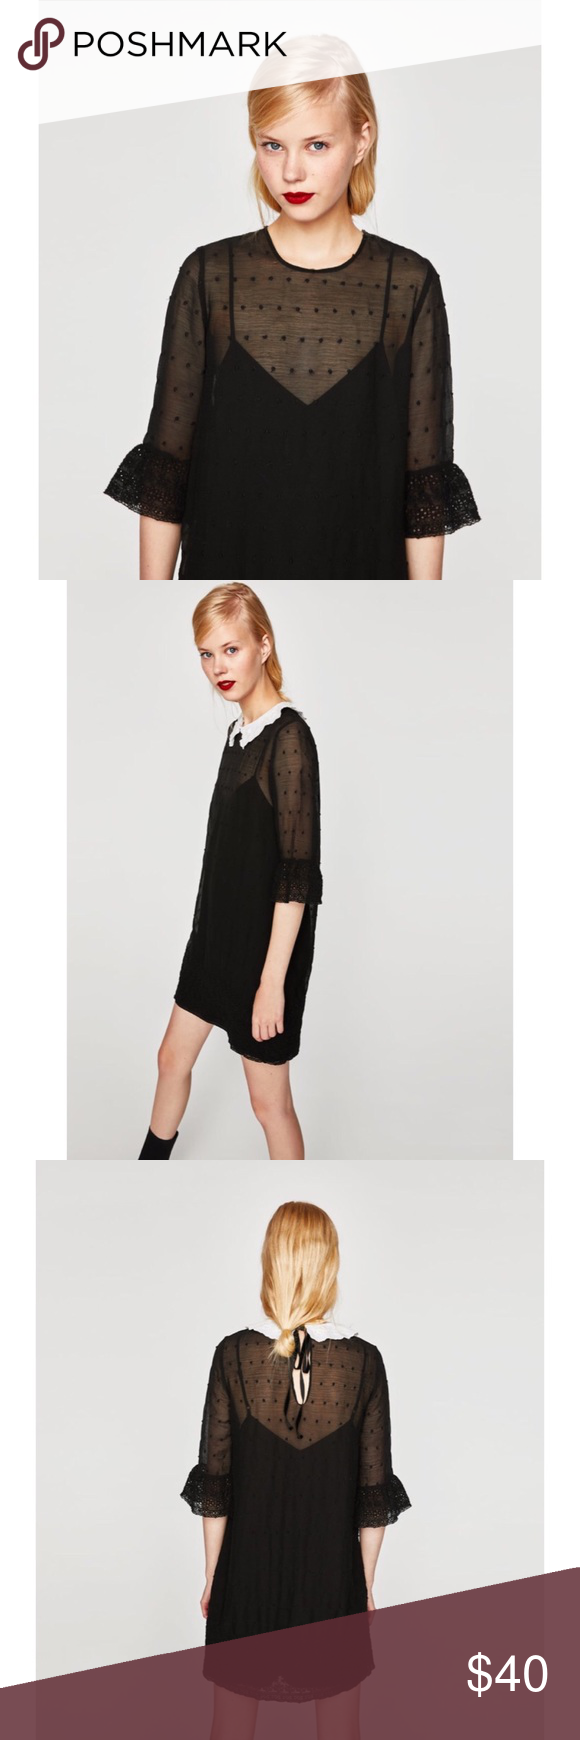 168fb63f Zara Embroidered Dress NWT. Zara Embroidered Black Dress with Contrasting  Collar. Features Shirt Collar